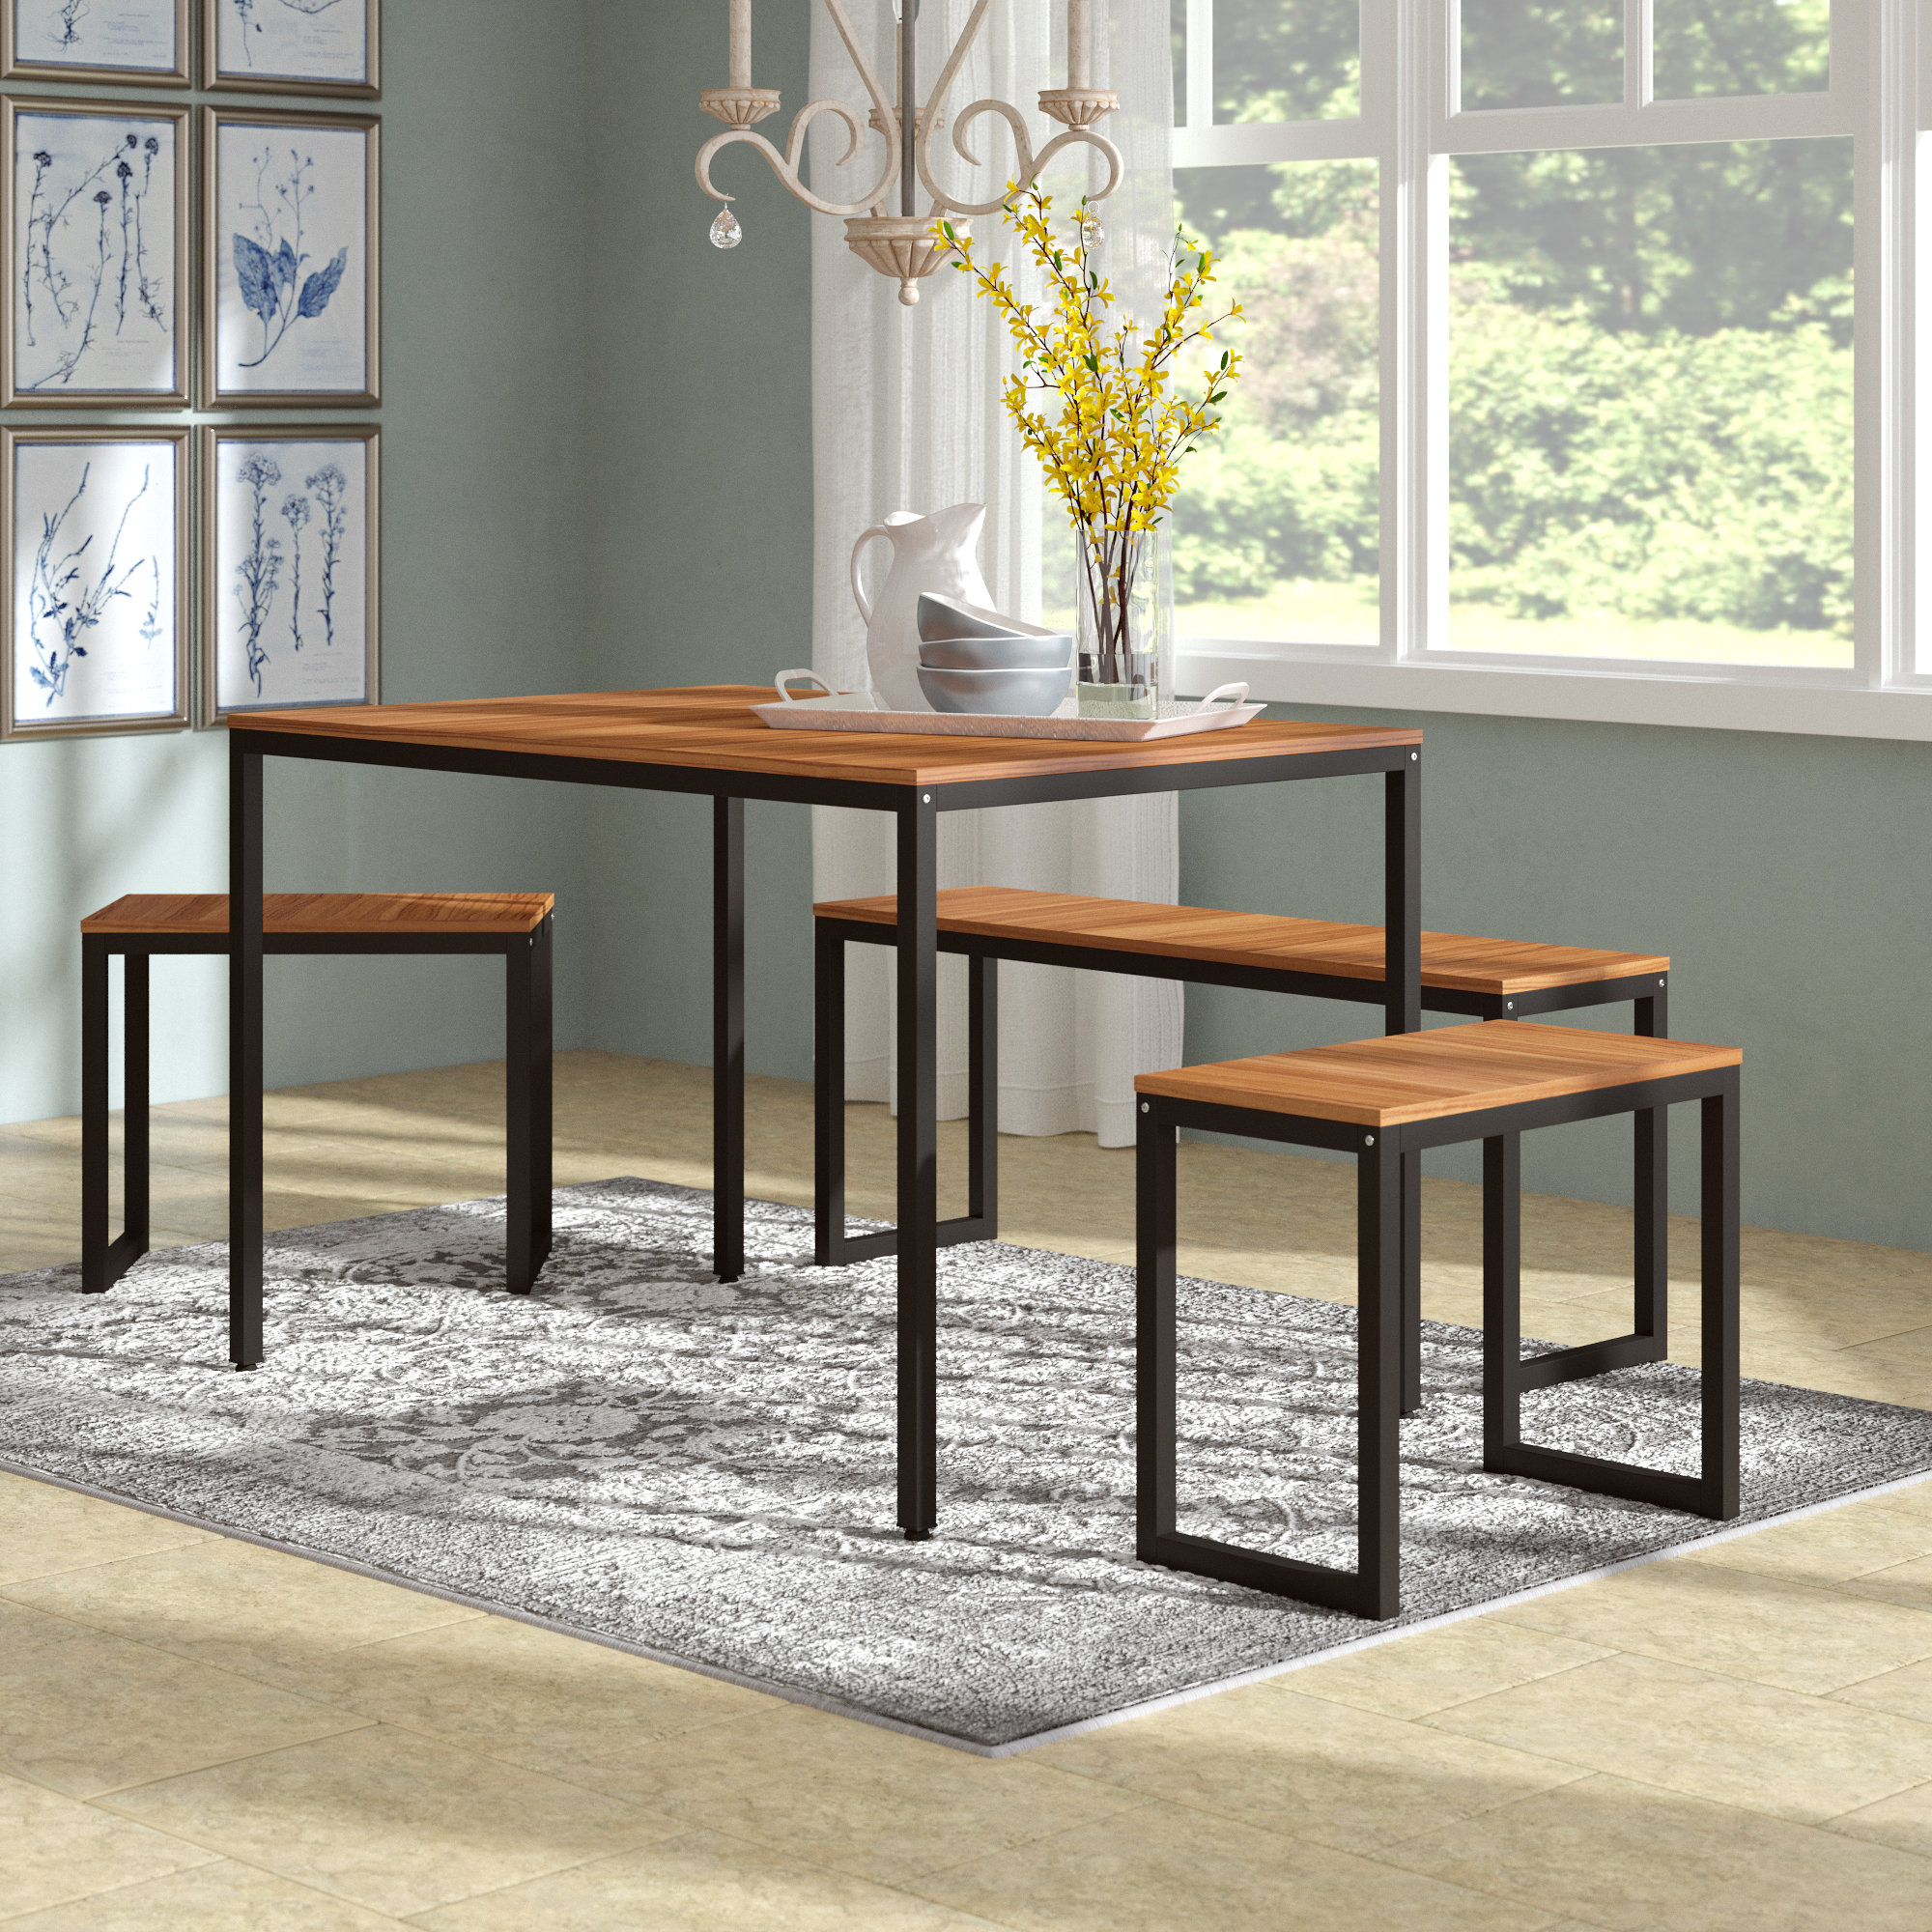 John 4 Piece Dining Set Throughout 2017 Isolde 3 Piece Dining Sets (Photo 9 of 20)